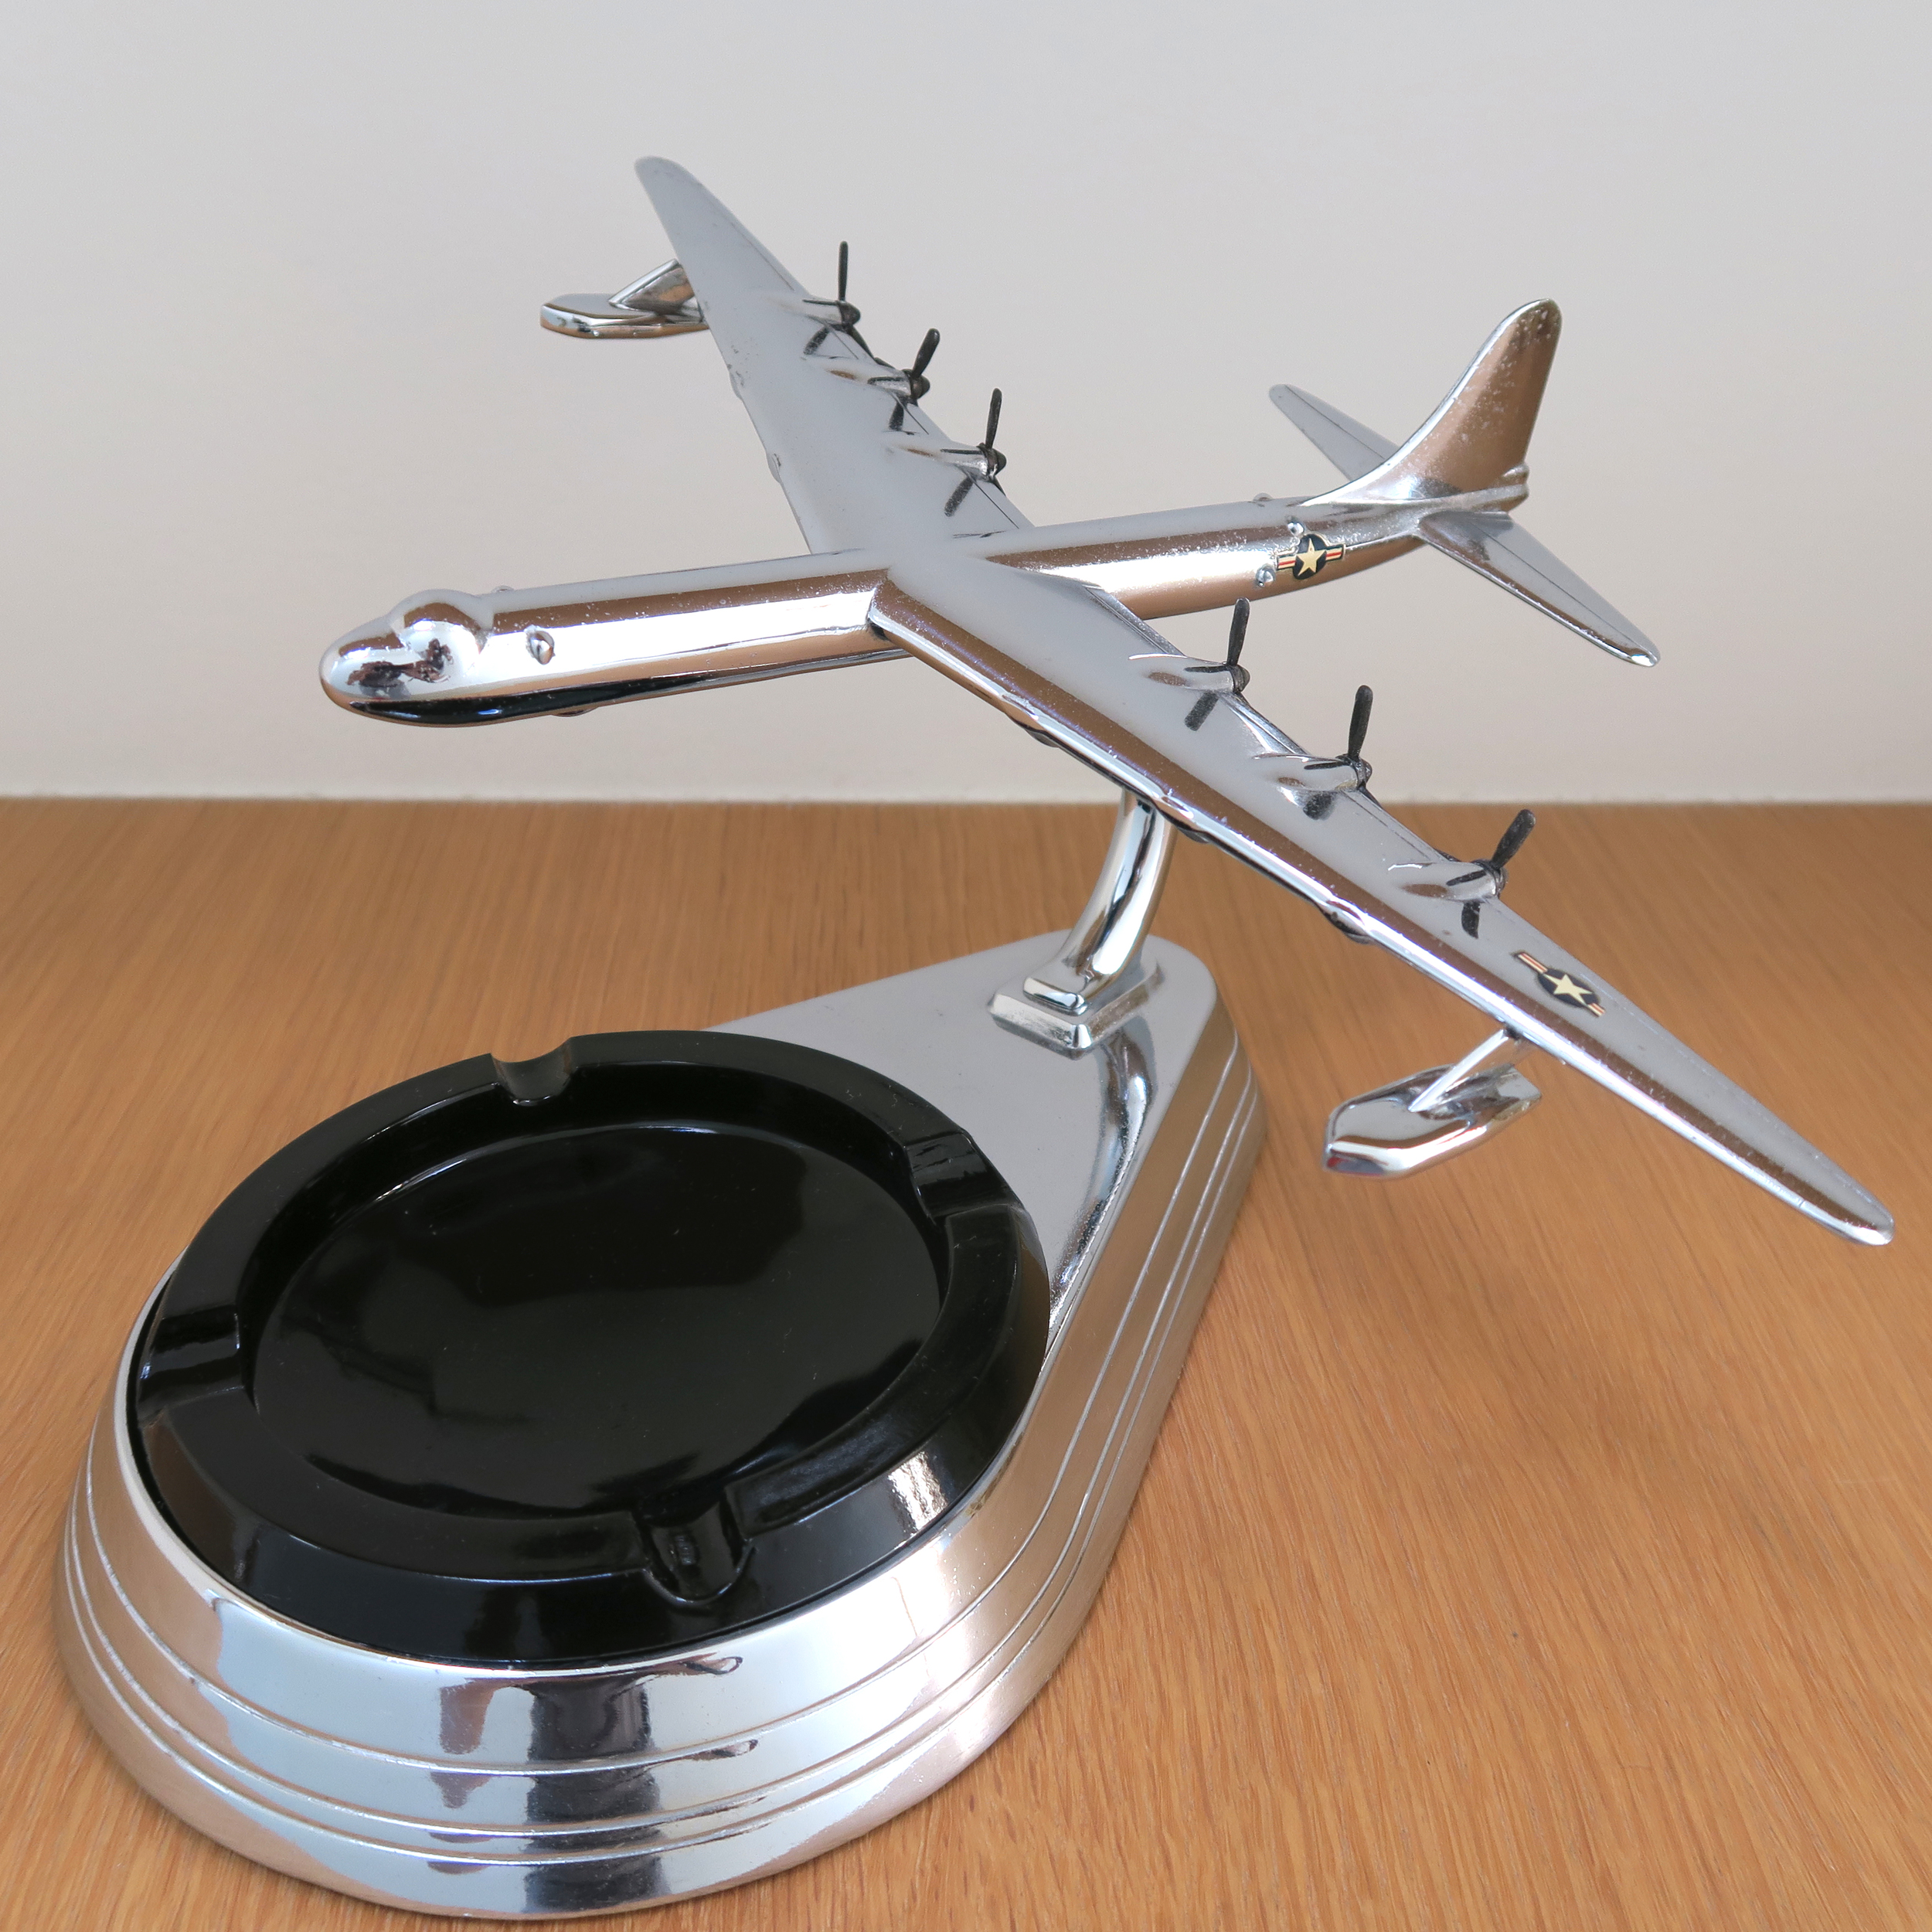 Convair B-36 Collectibles                                   Gallery